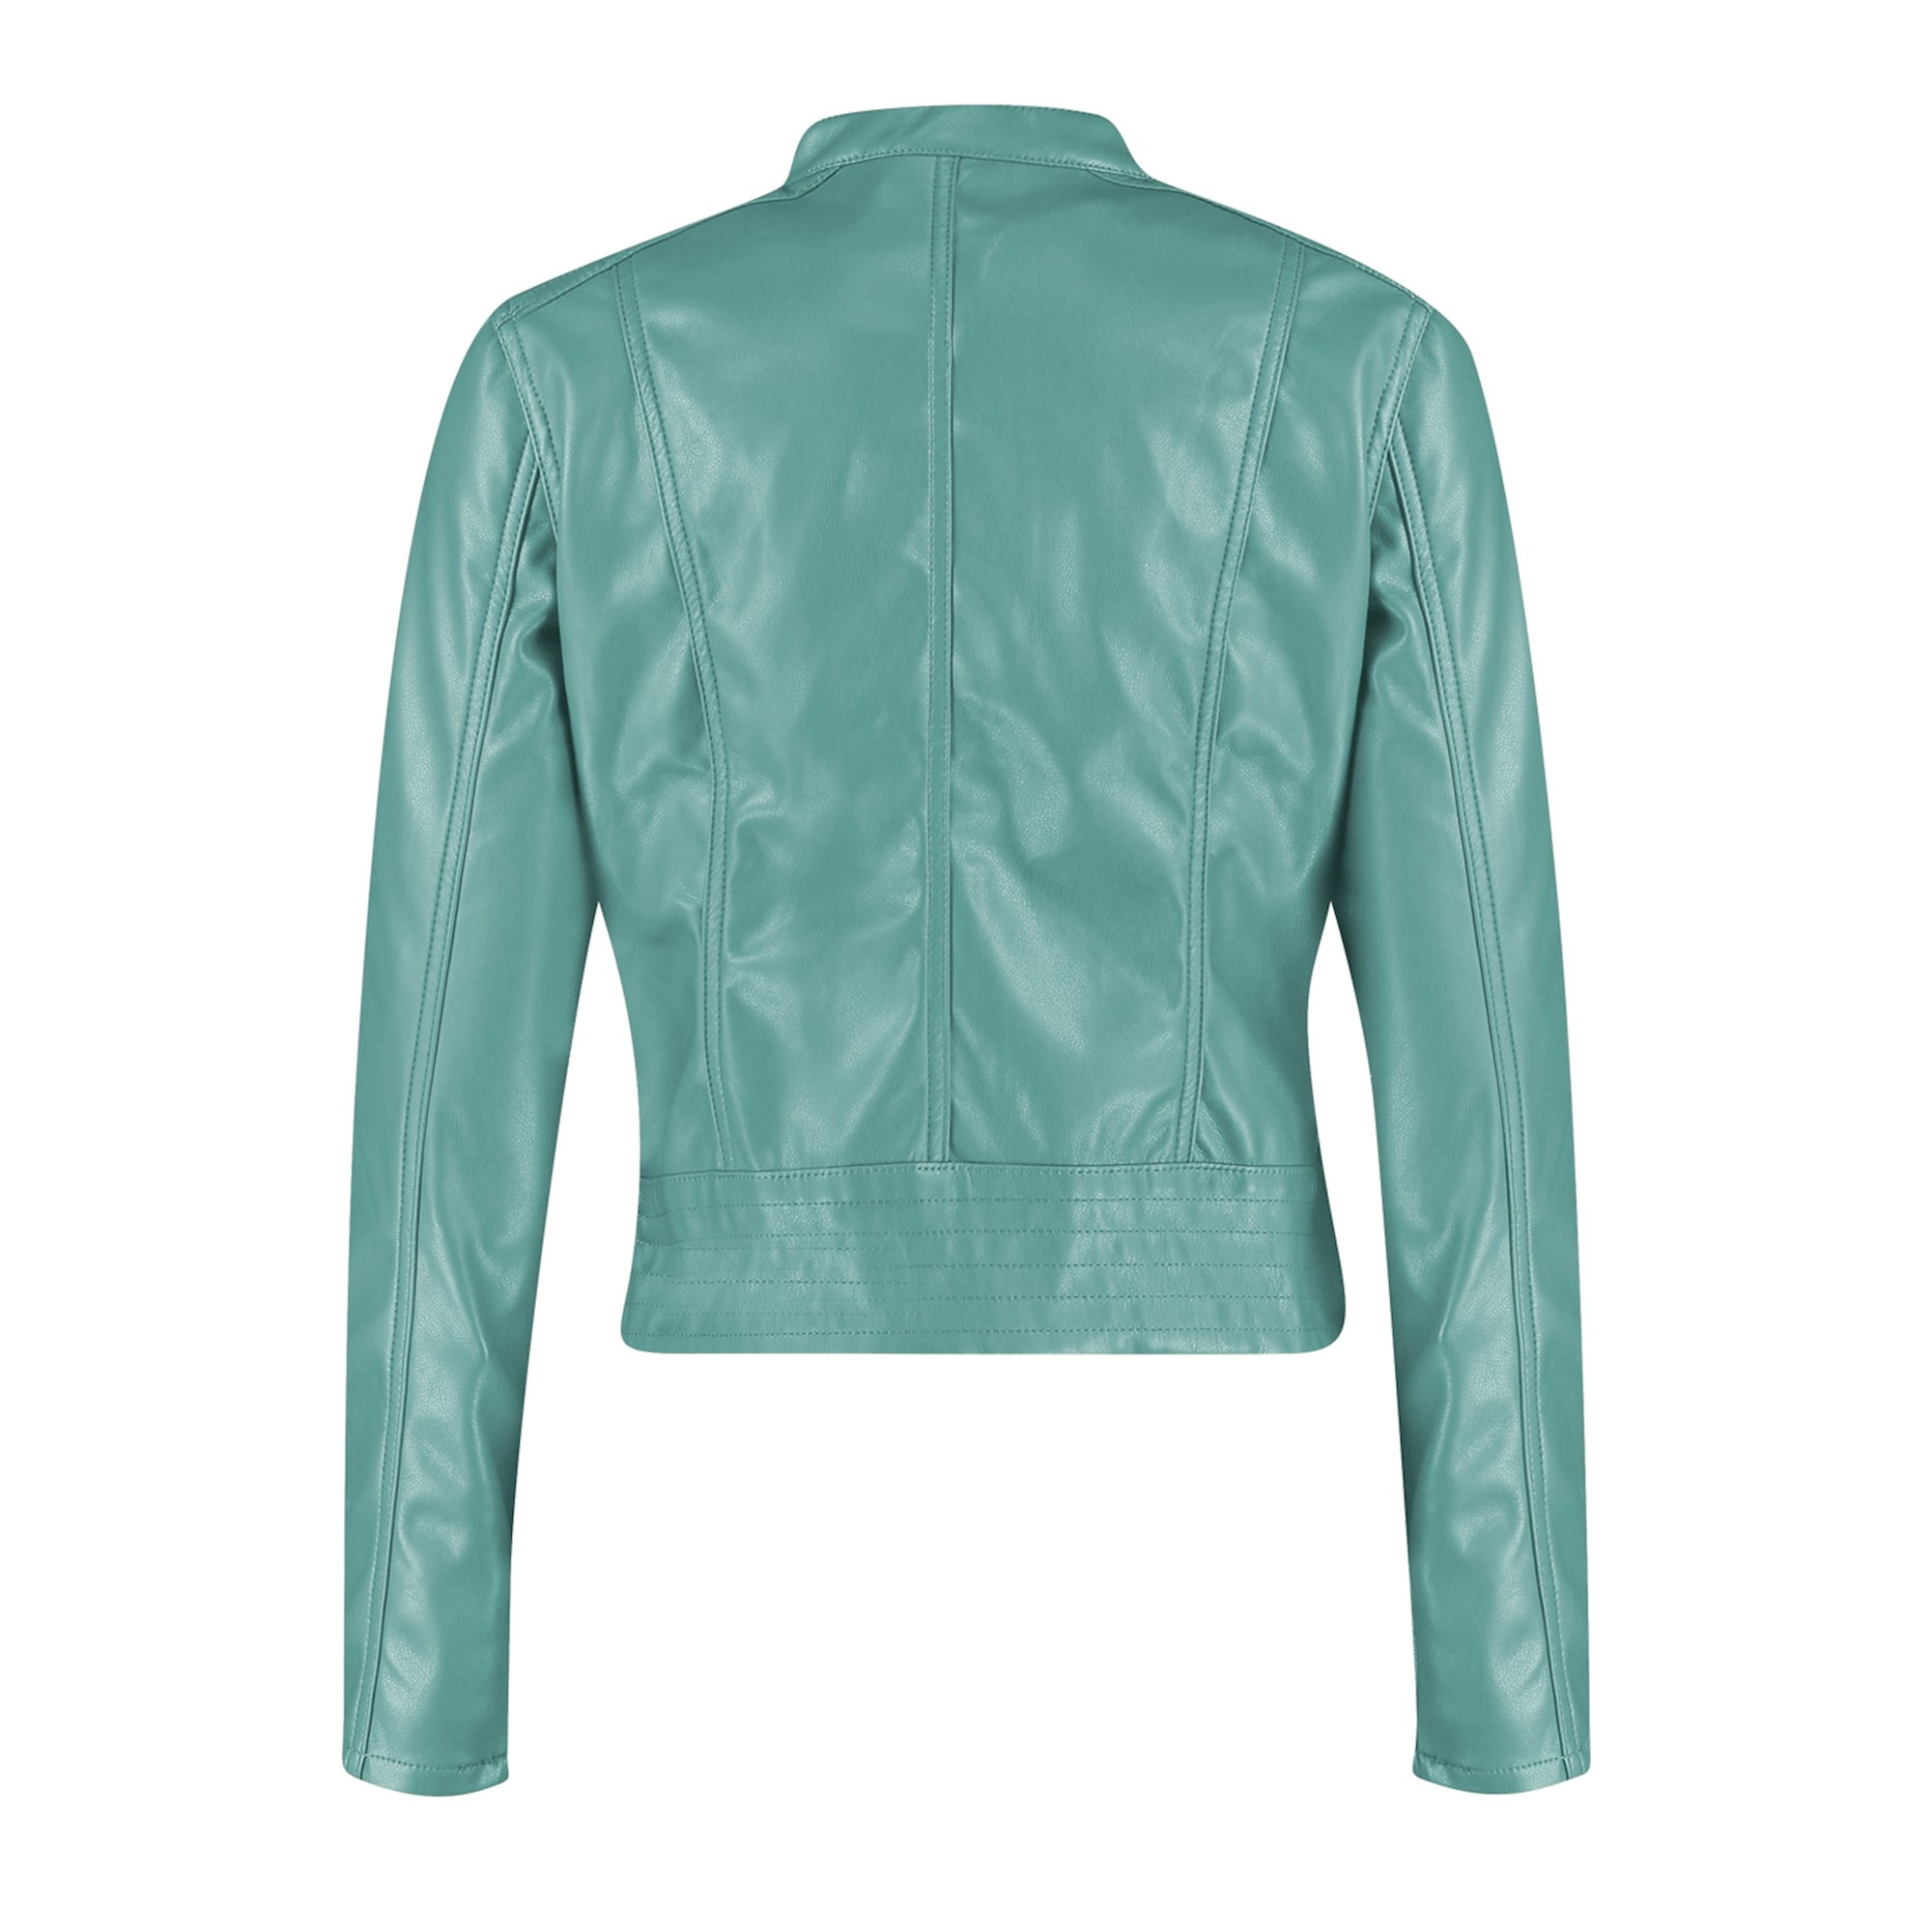 Red Button Red Button SRB2870 vegan leather jacket SheenaDusty jade